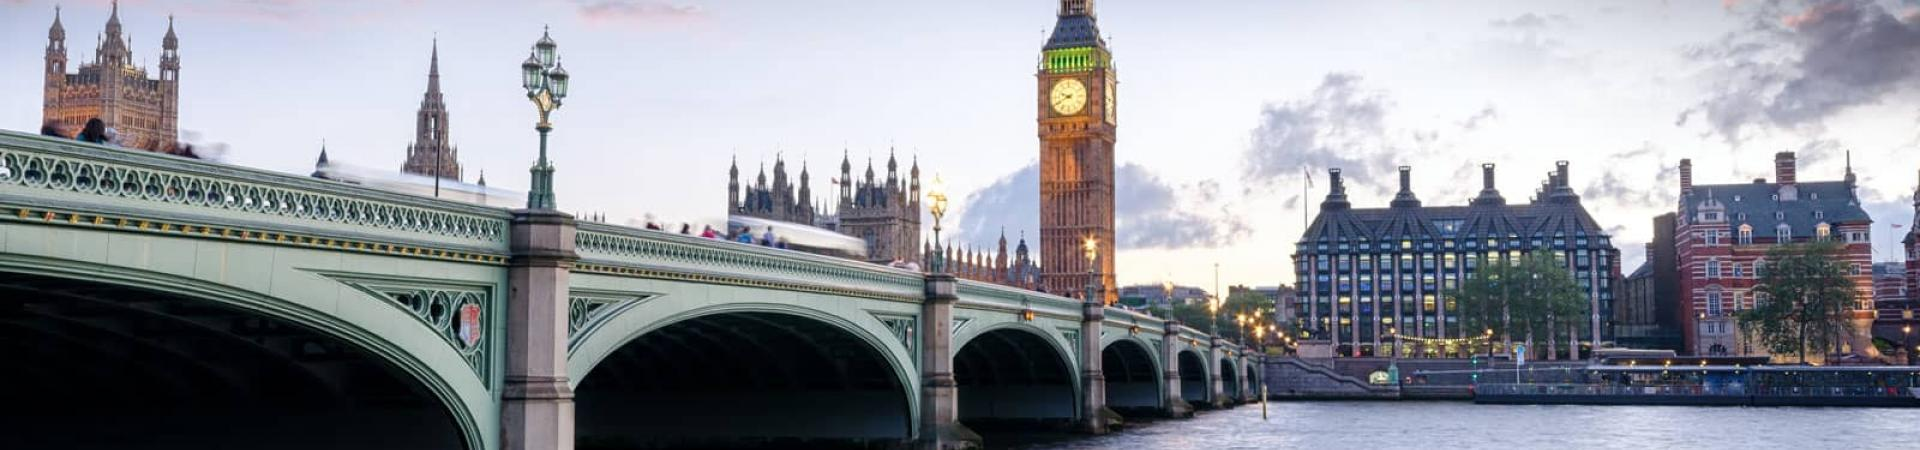 A banner image of Big Ben in London to represent The Craft Building